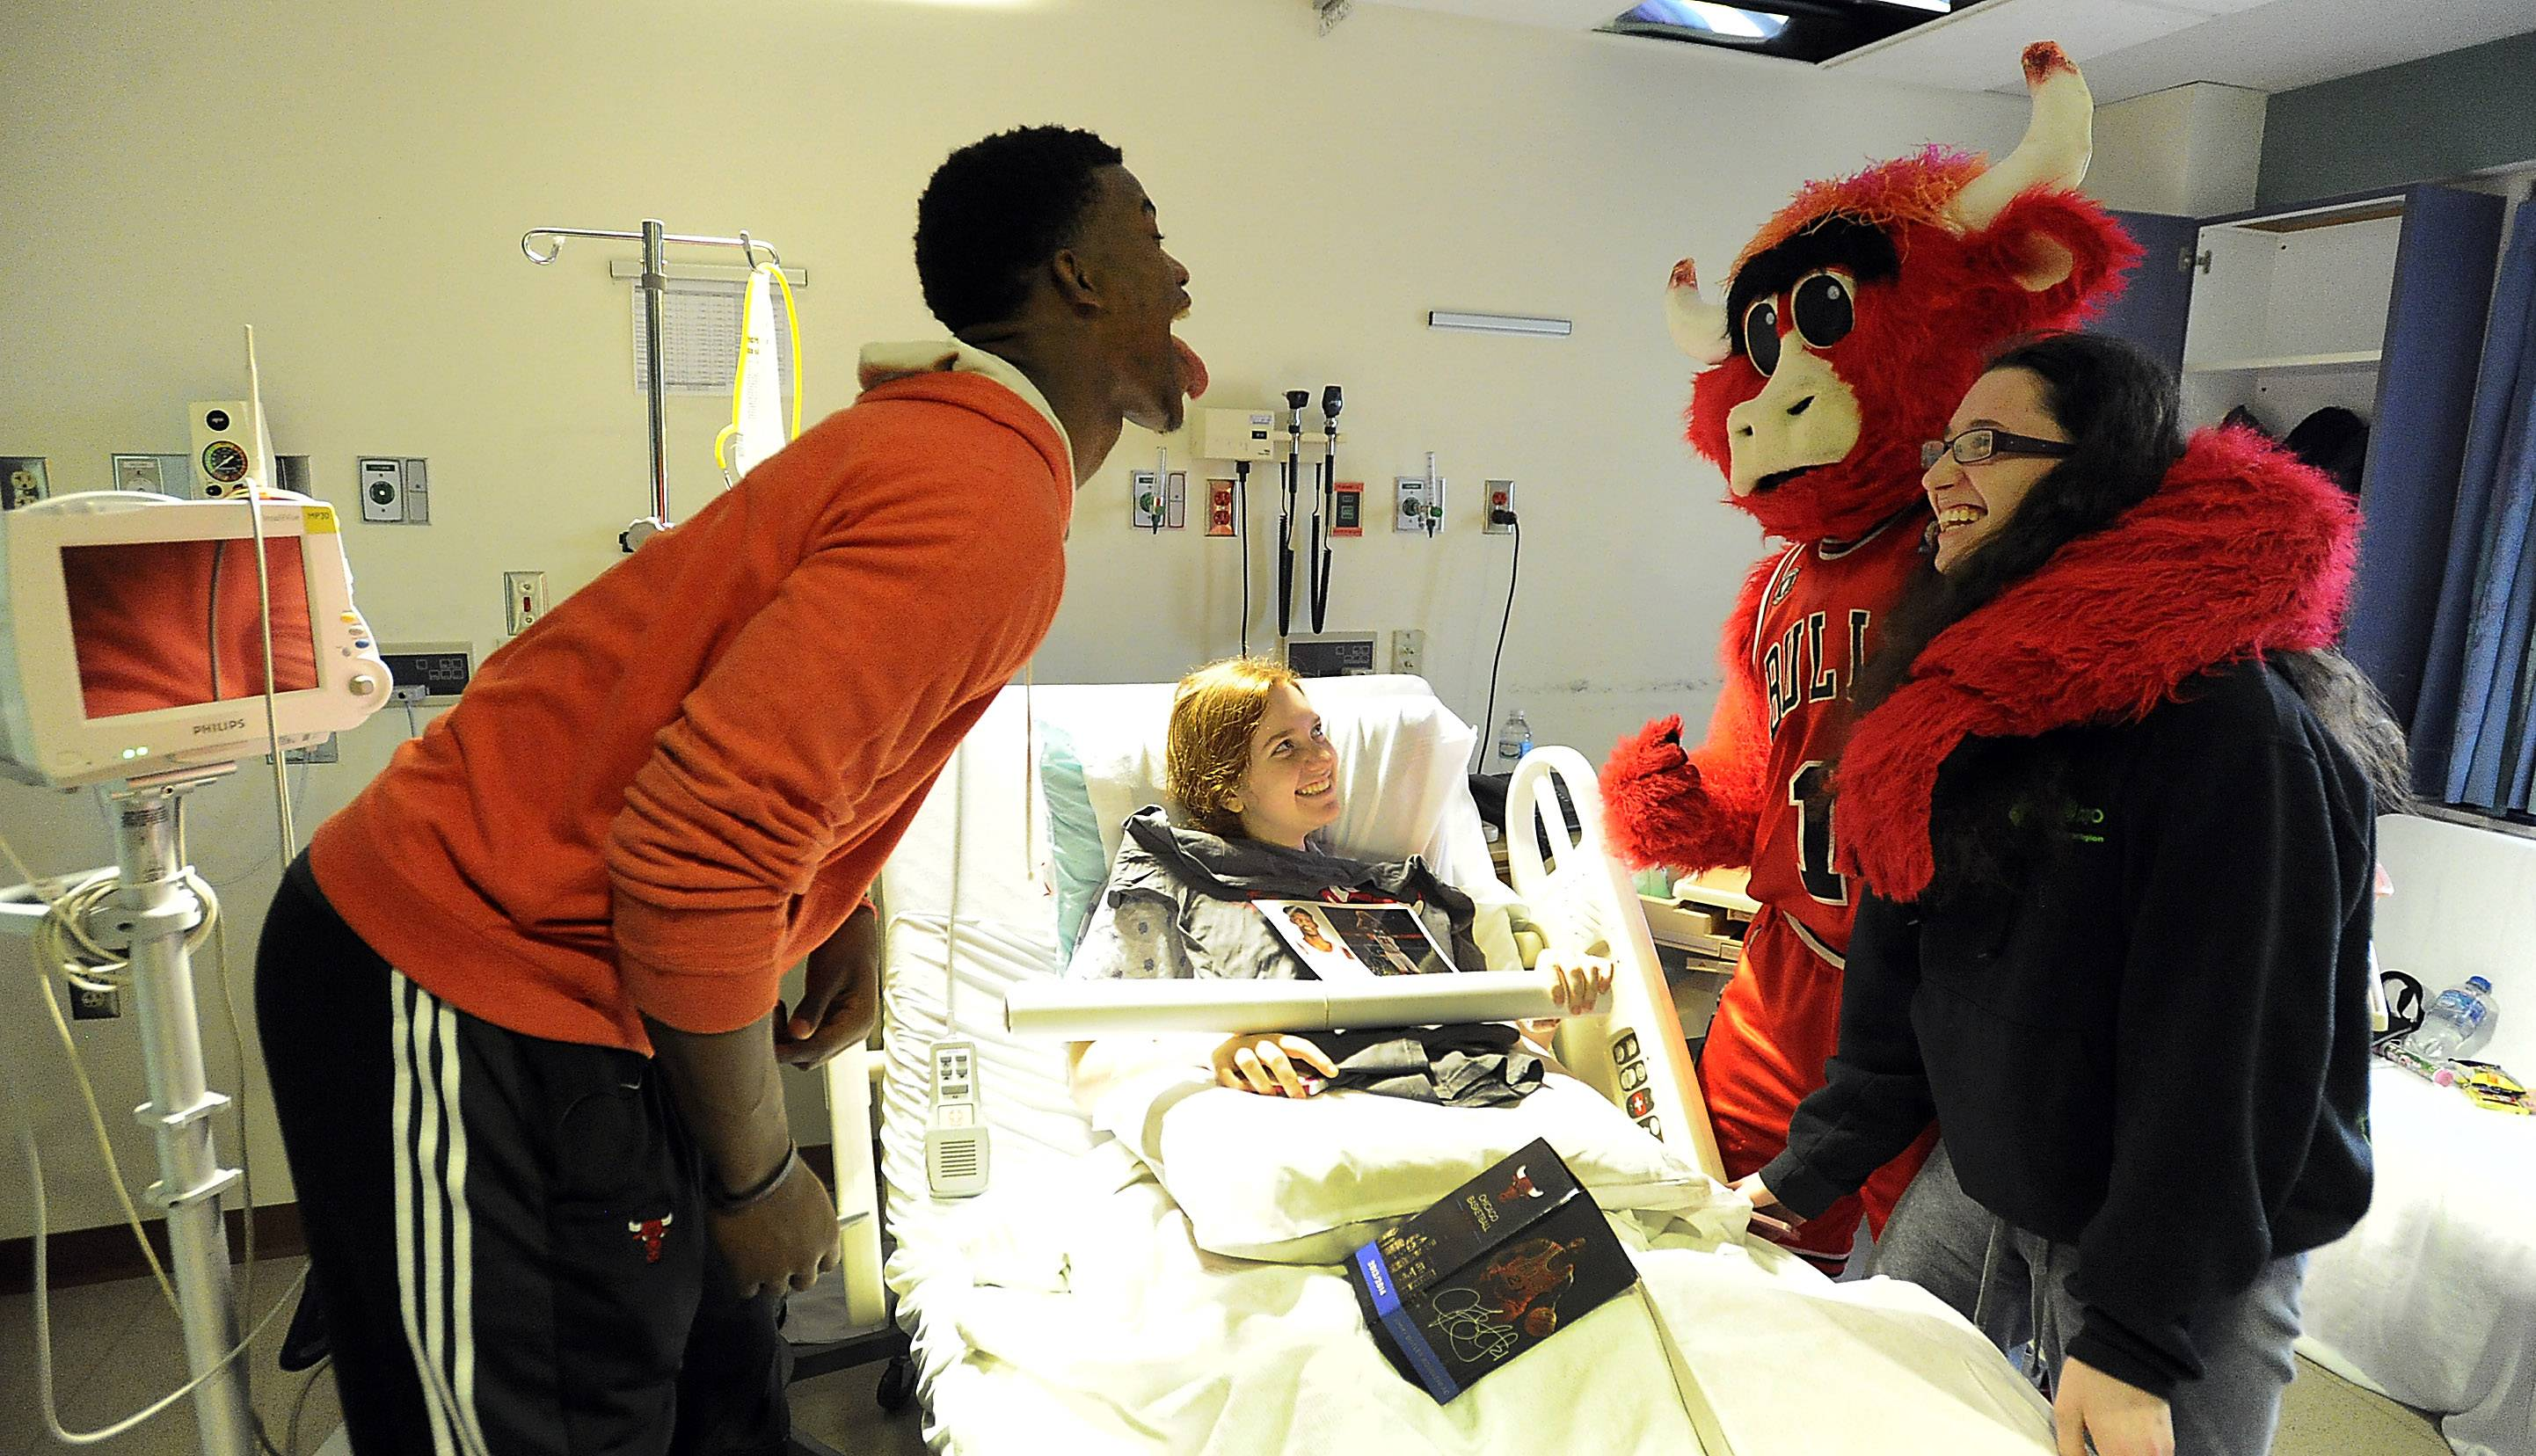 Chicago Bulls guard Jimmy Butler and team mascot Benny the Bull visit with Michelle Katz, 15, of Buffalo Grove and her sister Rachel, 16, at Lutheran General Advocate Children's Hospital in Park Ridge on Thursday.